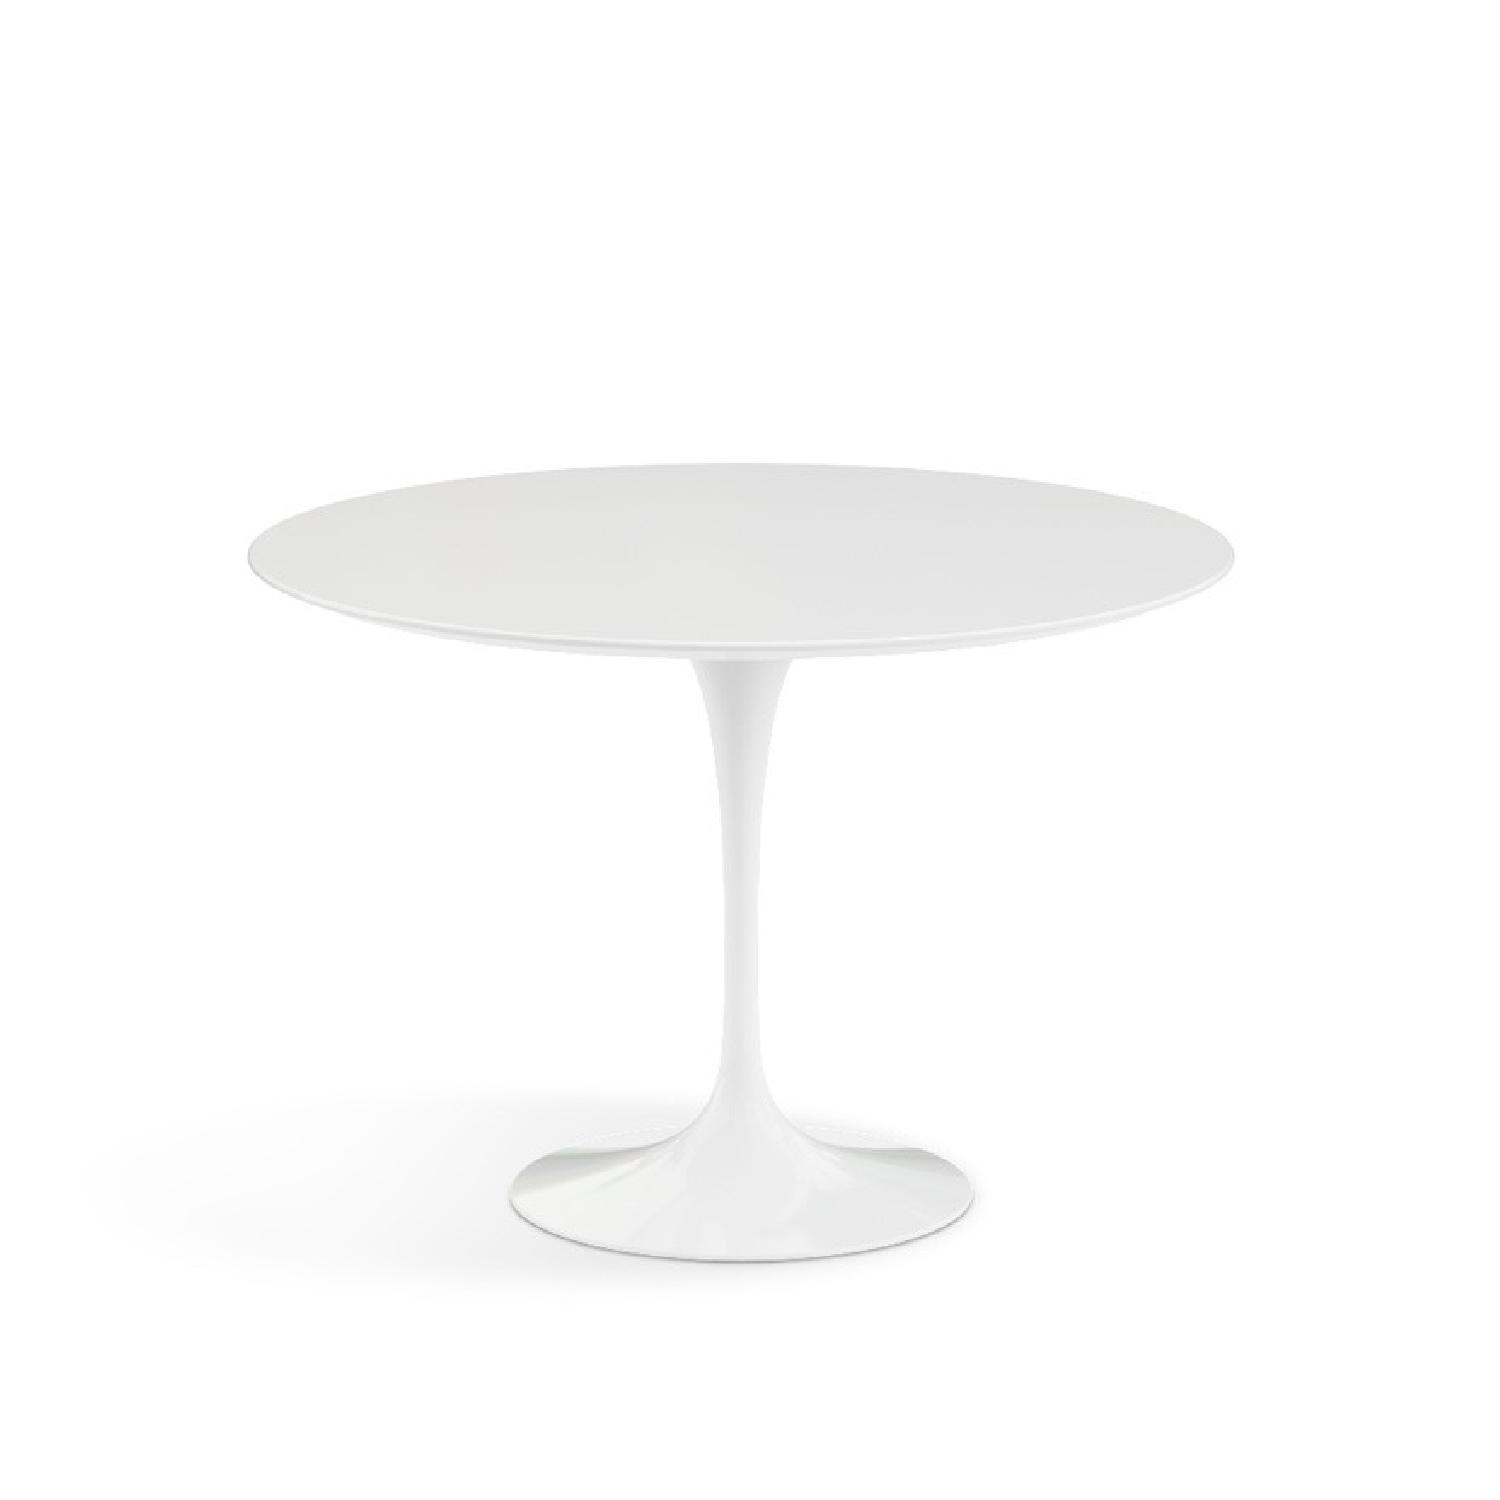 Saarinen Knoll Table Knoll Saarinen Round Tulip Dining Table